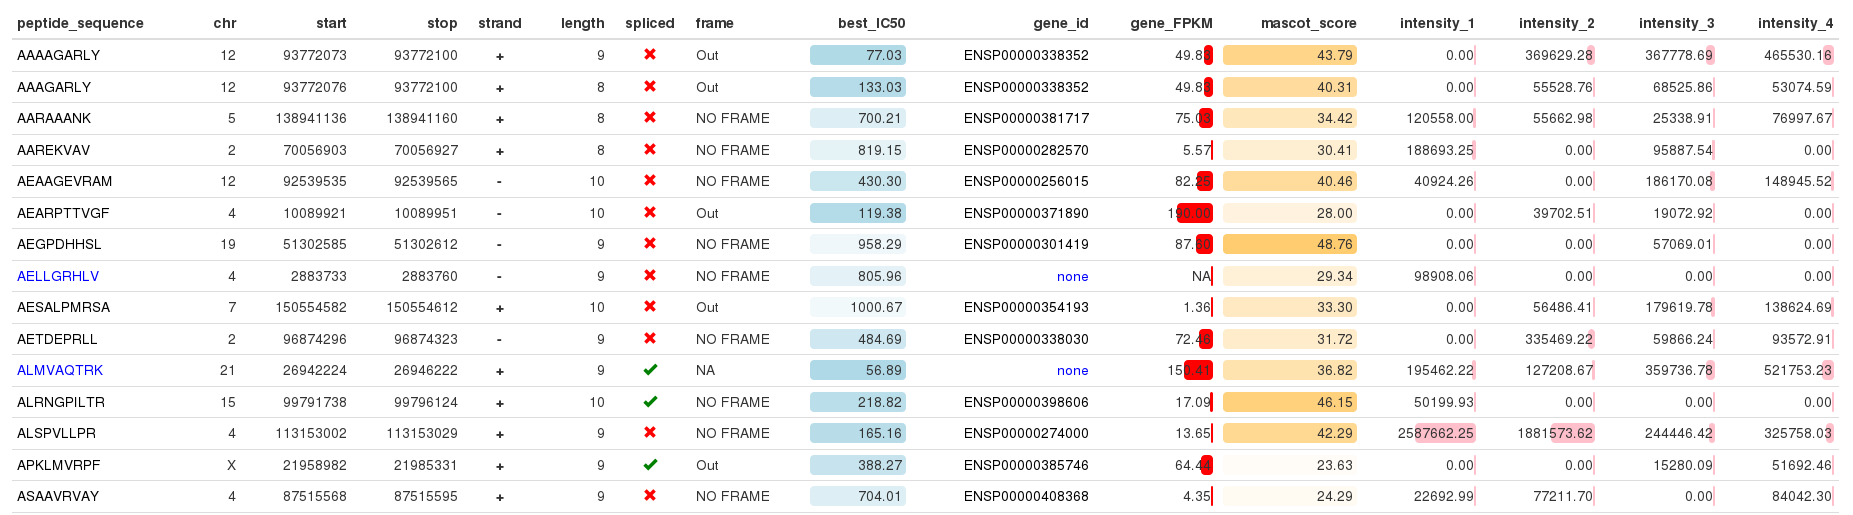 Create a nice looking table using R – IRIC's Bioinformatics